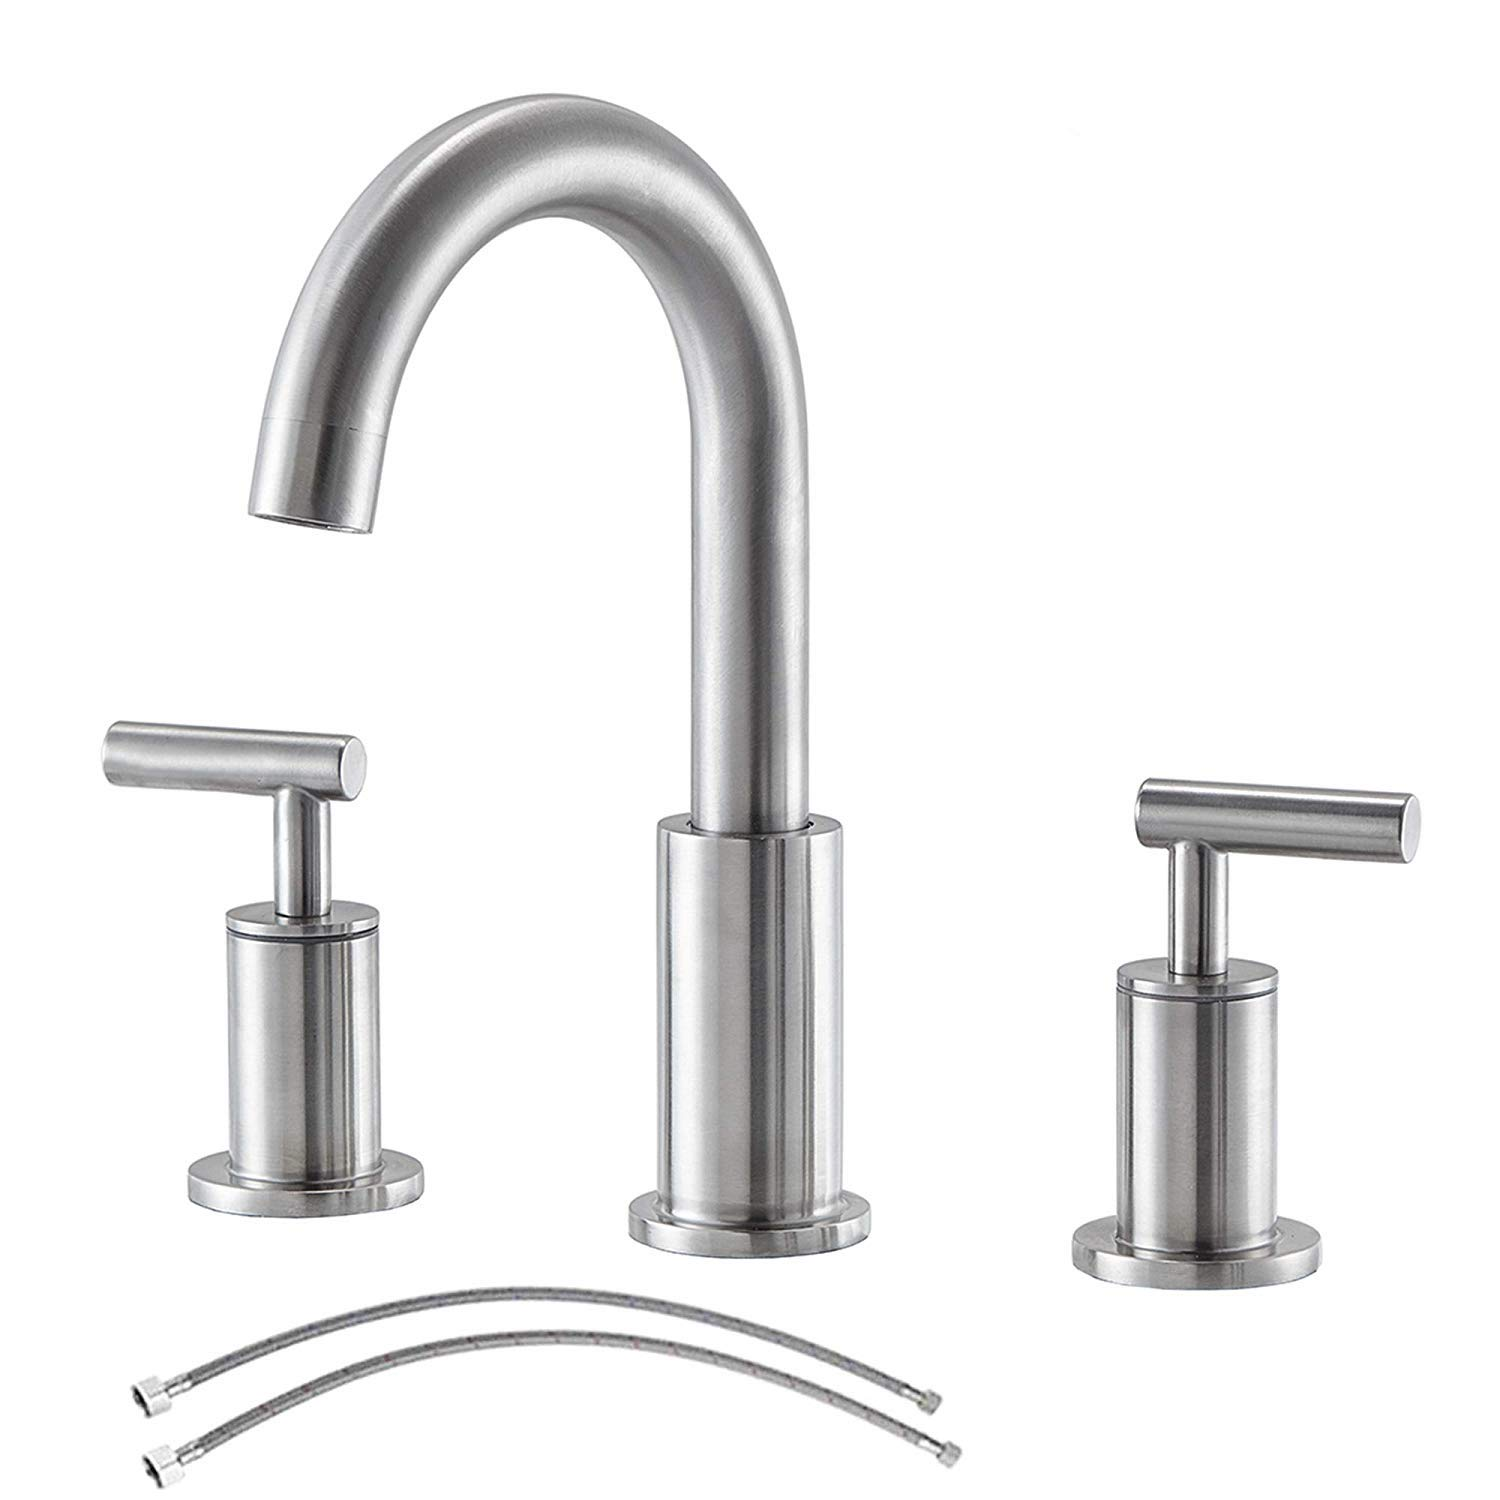 Comllen Modern Stainless Steel Double Handle Brushed Nickel 8 Inch Lavatory Widespread Bathroom Faucet Bathroom Sink Faucet Without Pop Up Drain